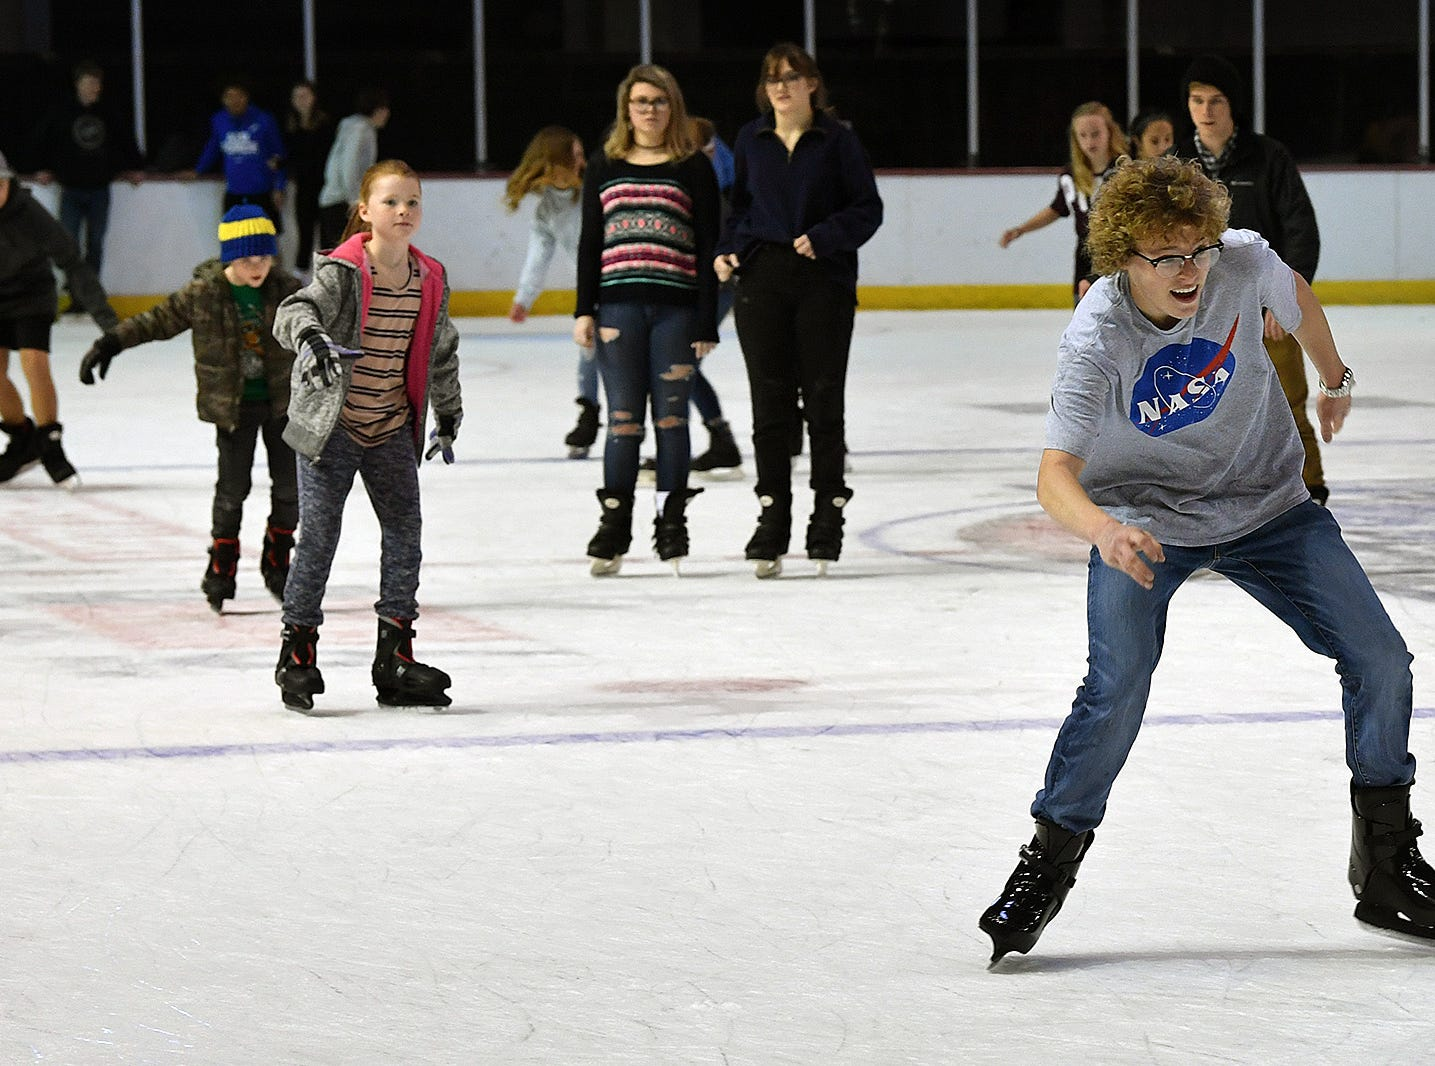 Approximately 200 people turned out Friday afternoon for a First Bank Open Skate event at the Kay Yeger Coliseum.